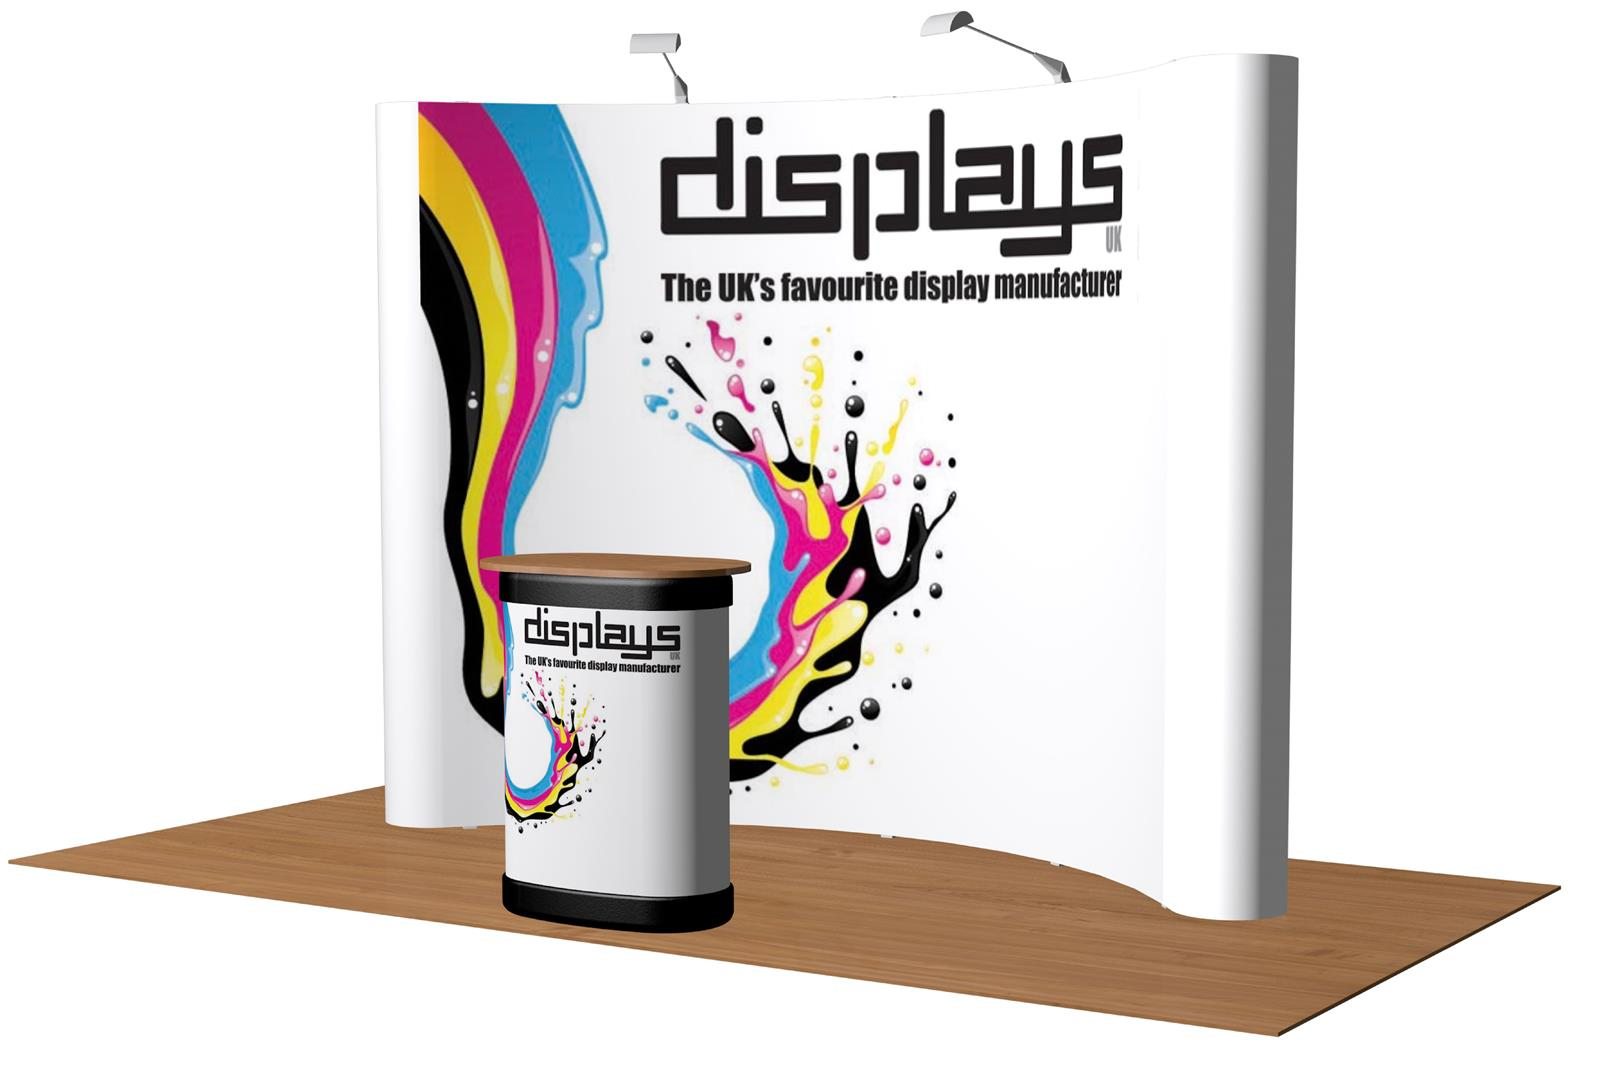 3x4 Visage Premium Pop Up Exhibition Stand Display